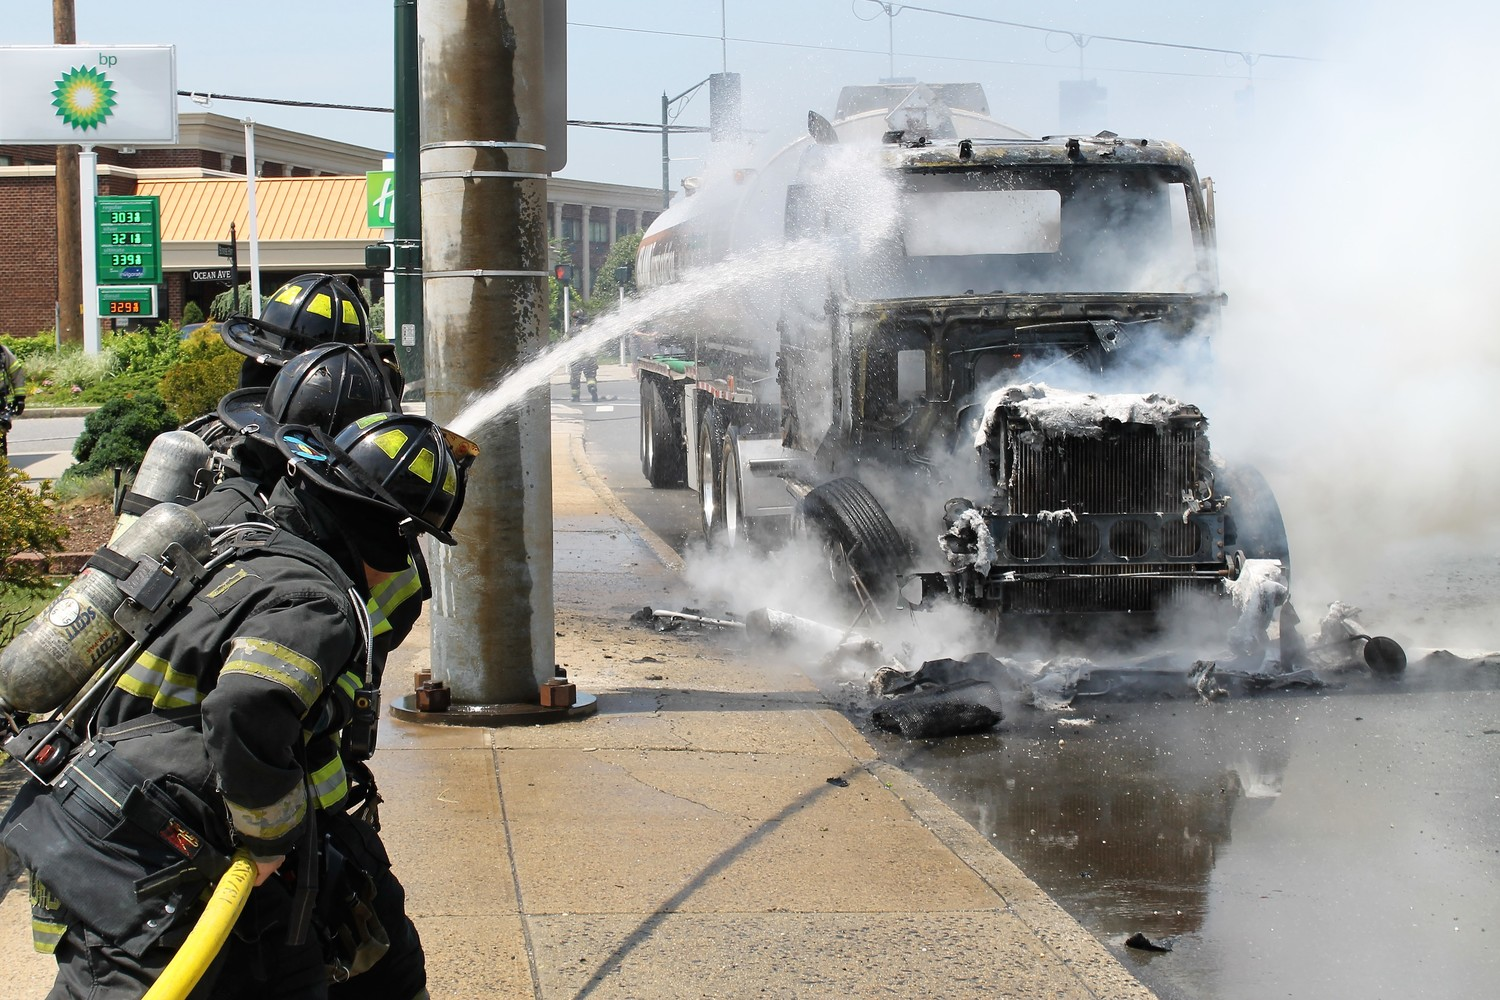 At around noon on Tuesday, a tanker truck caught fire on Tuesday morning at Sunrise Highway and Ocean Avenue.